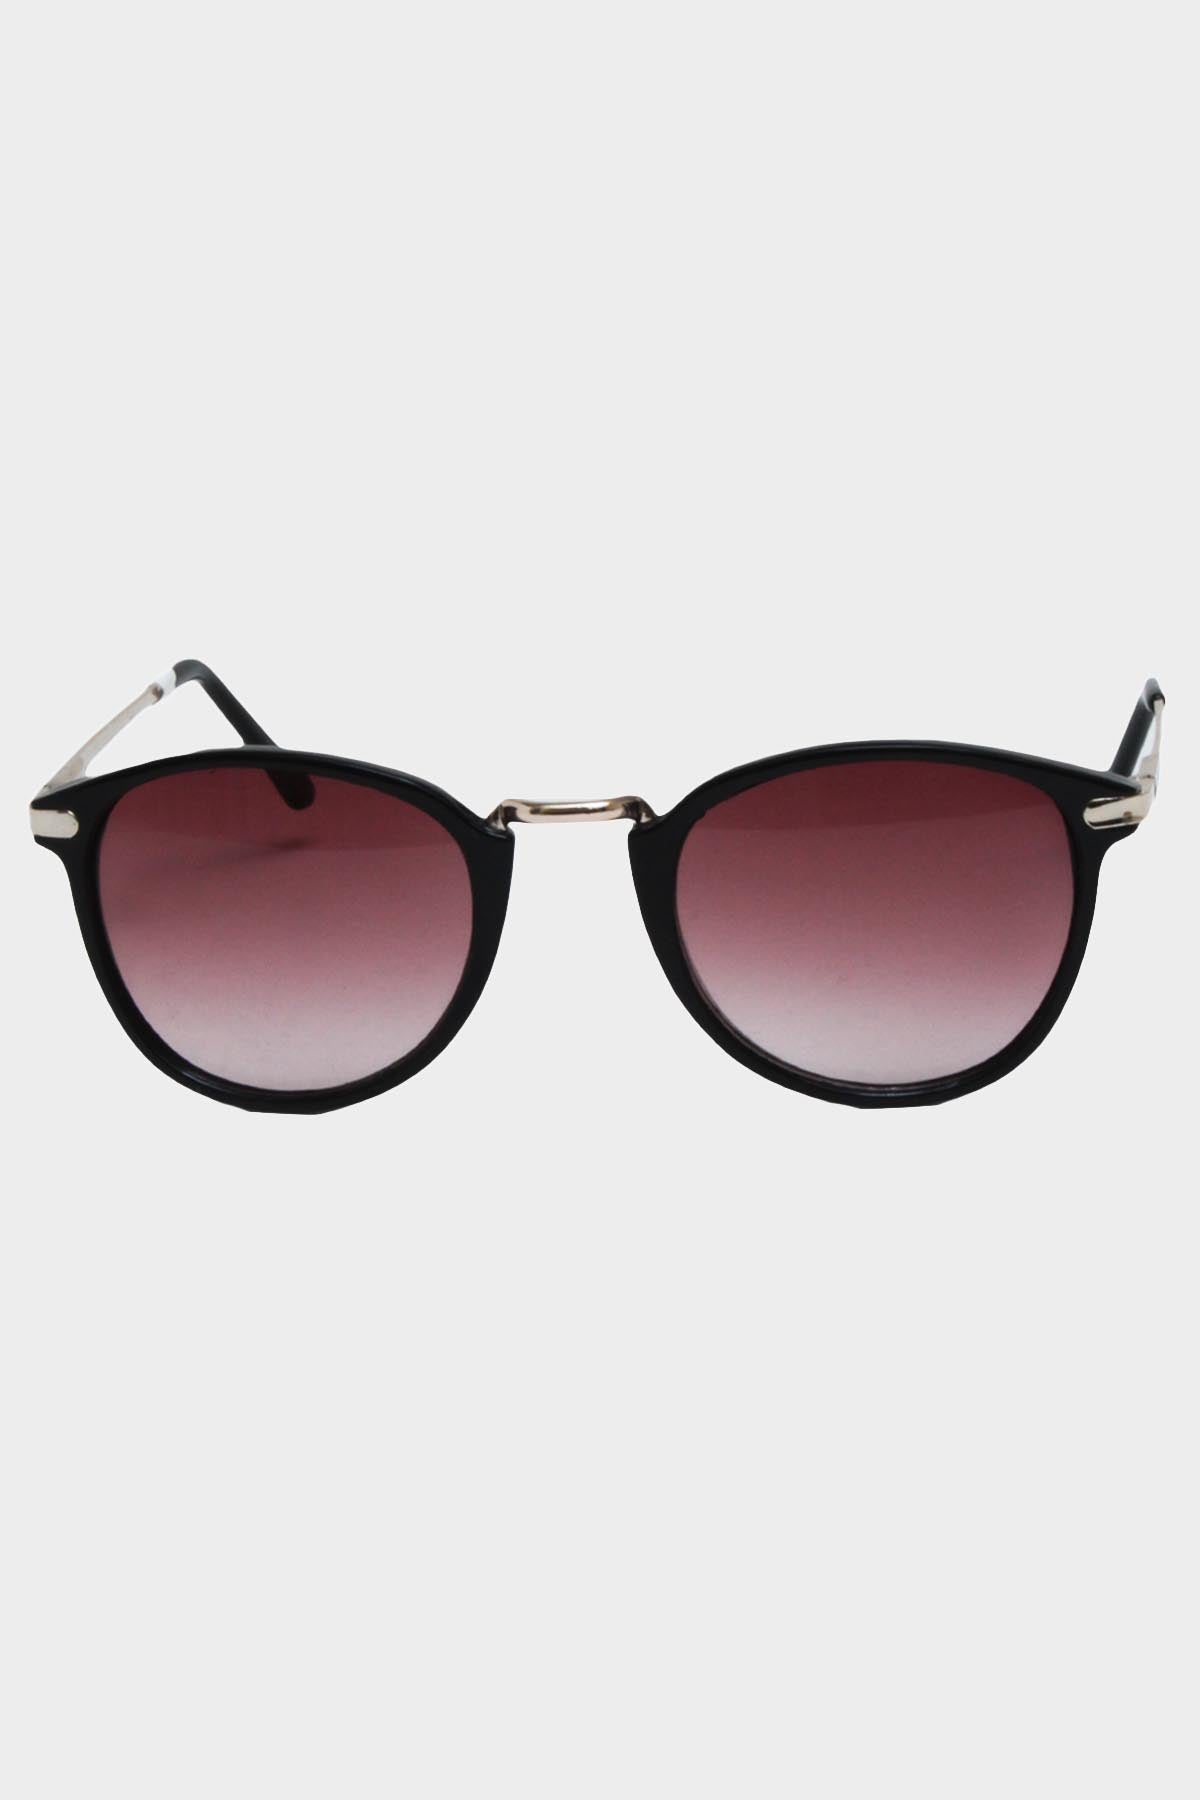 Castro Black Sunglasses 3444